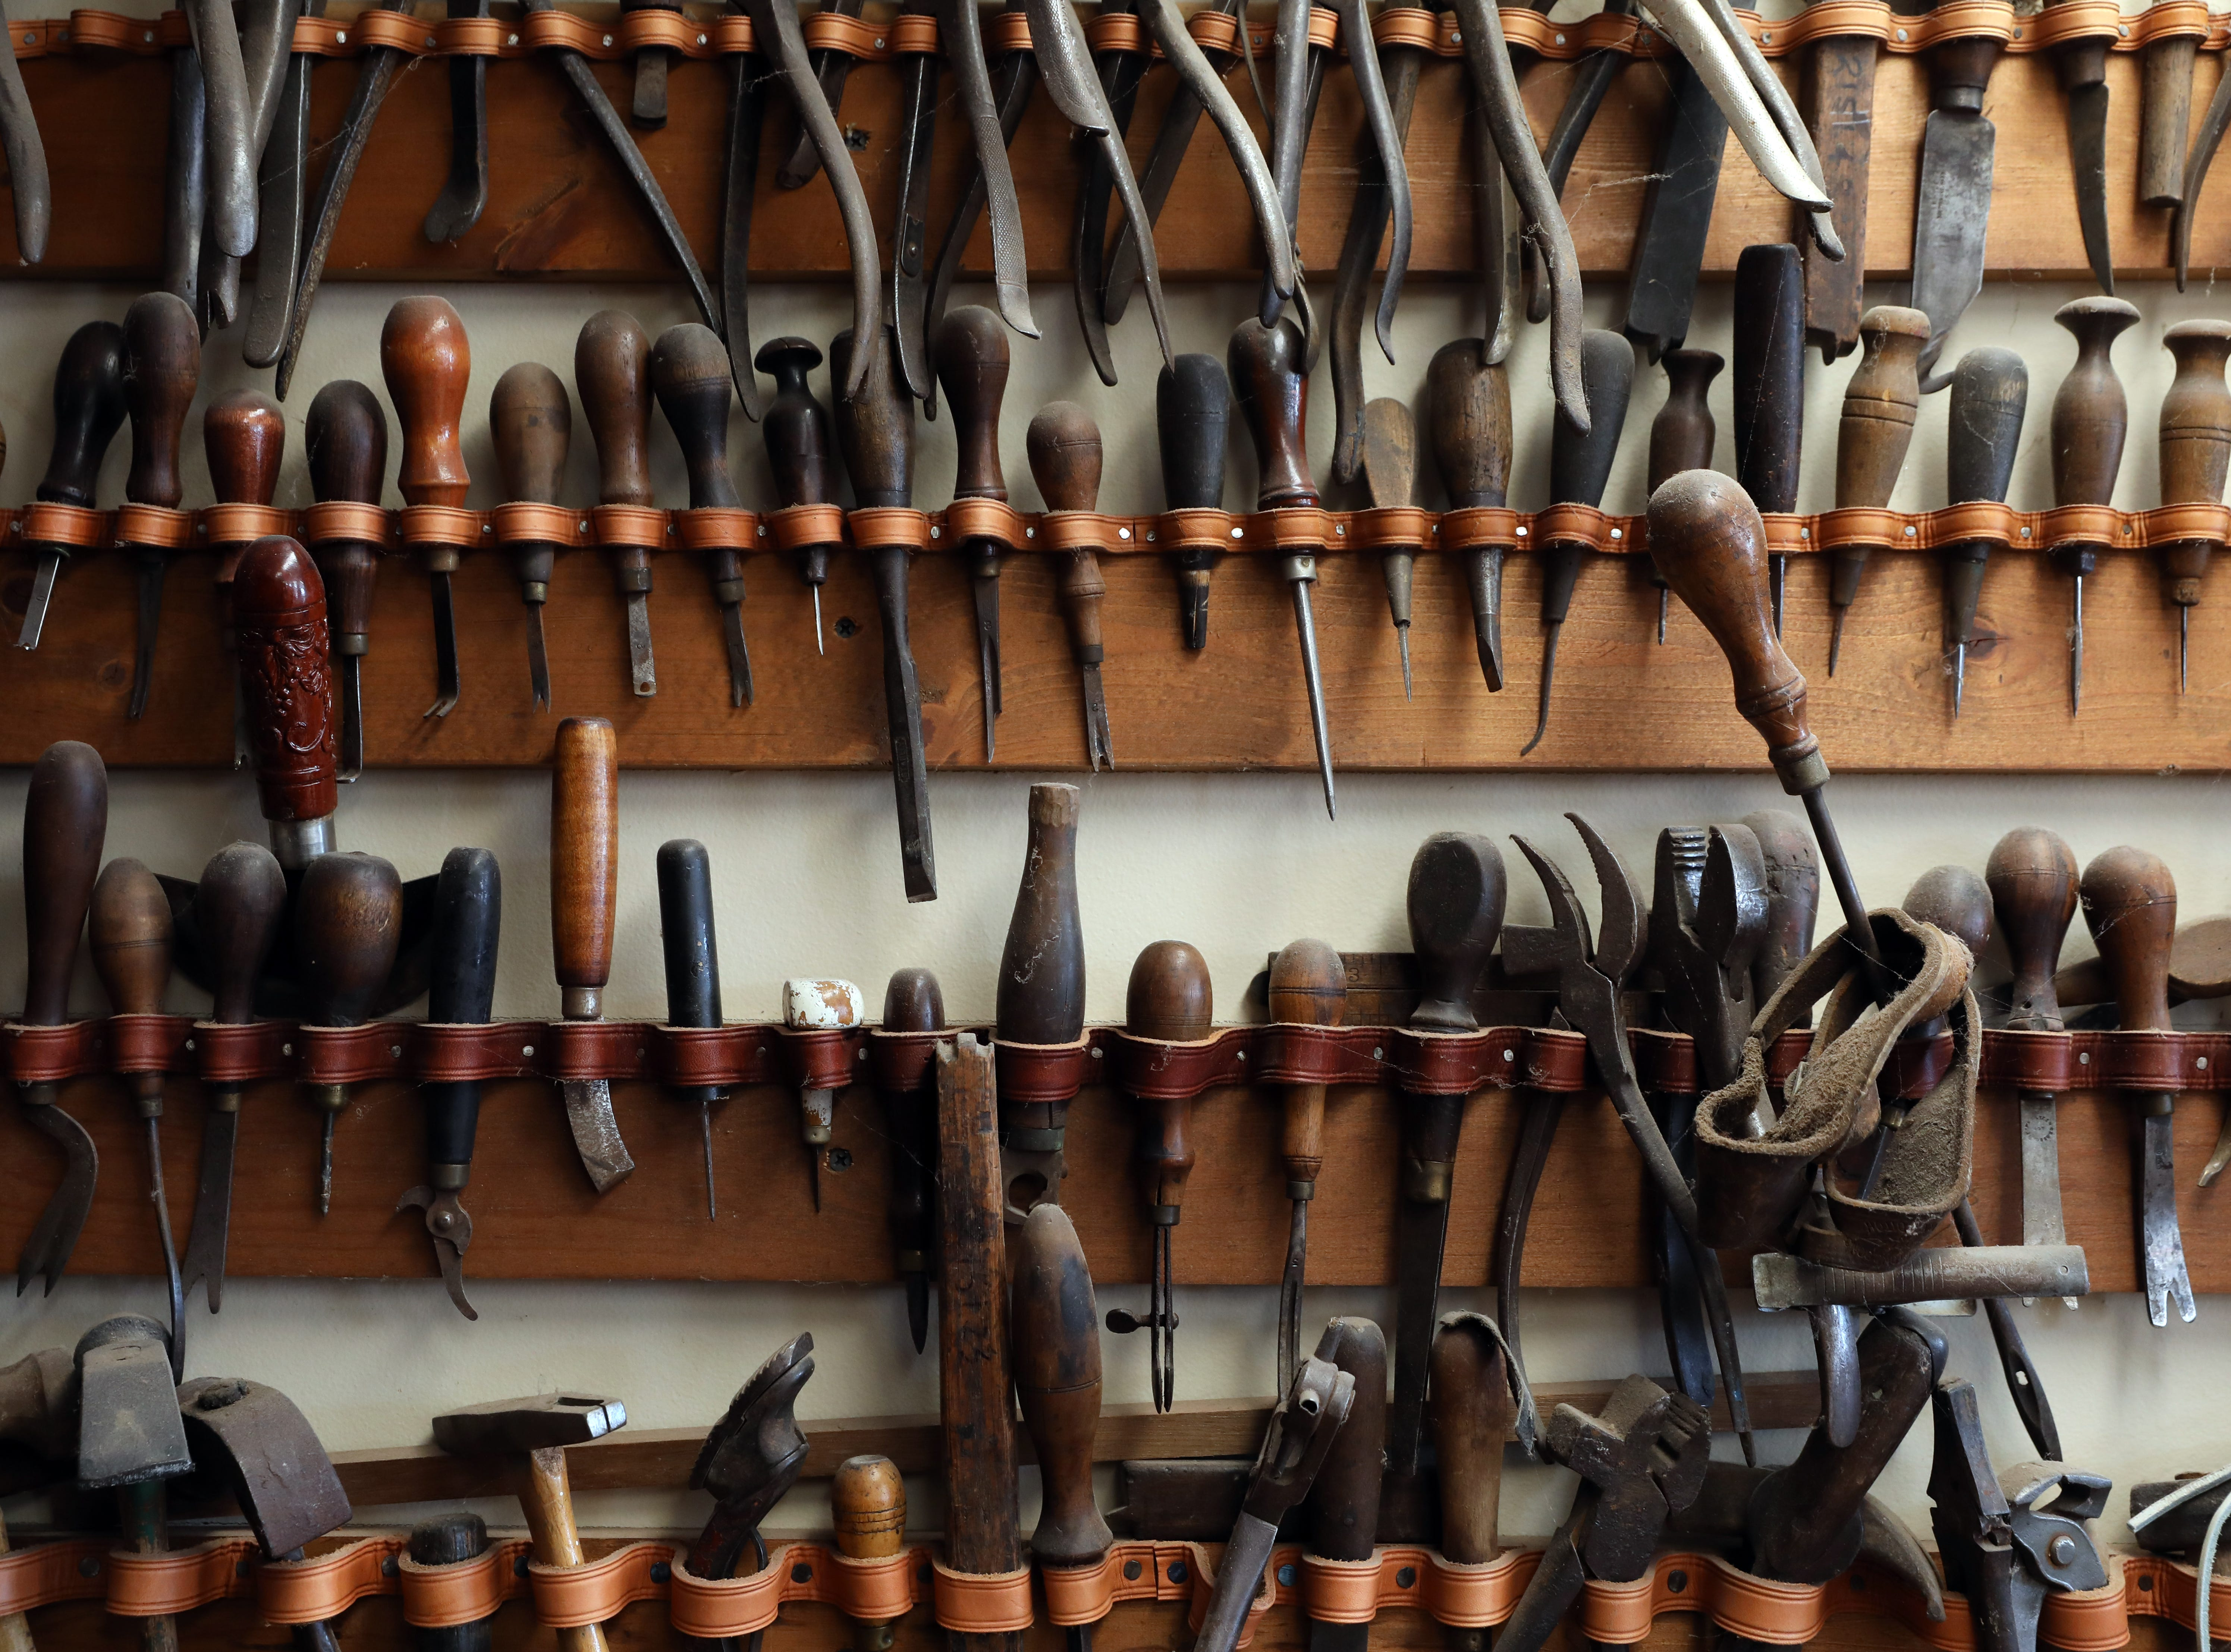 Owner Dennis Knight's collection of antique leatherworking tools at River Ridge Leather Company in Roscoe Village.